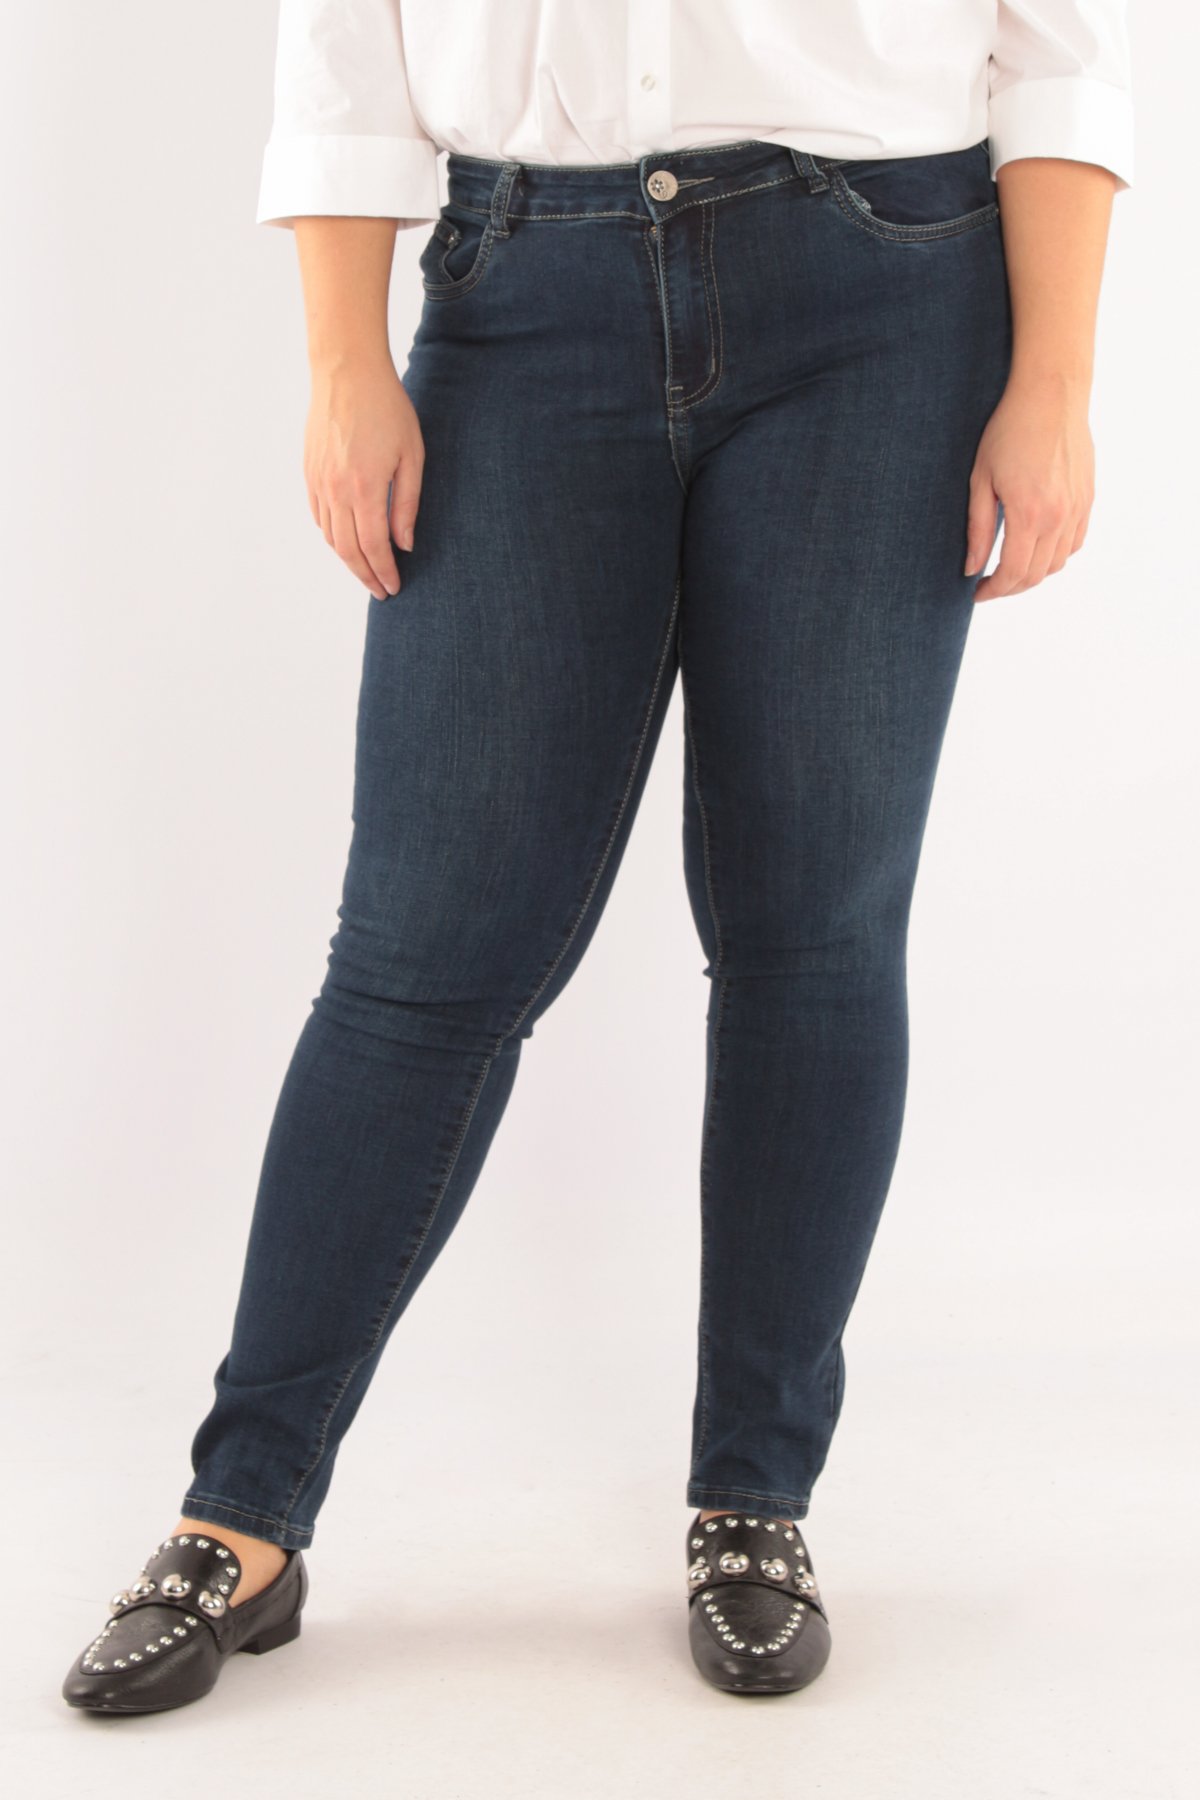 Jeans Femme Bleu jean NEW LOLO A1895 #c eFashion Paris